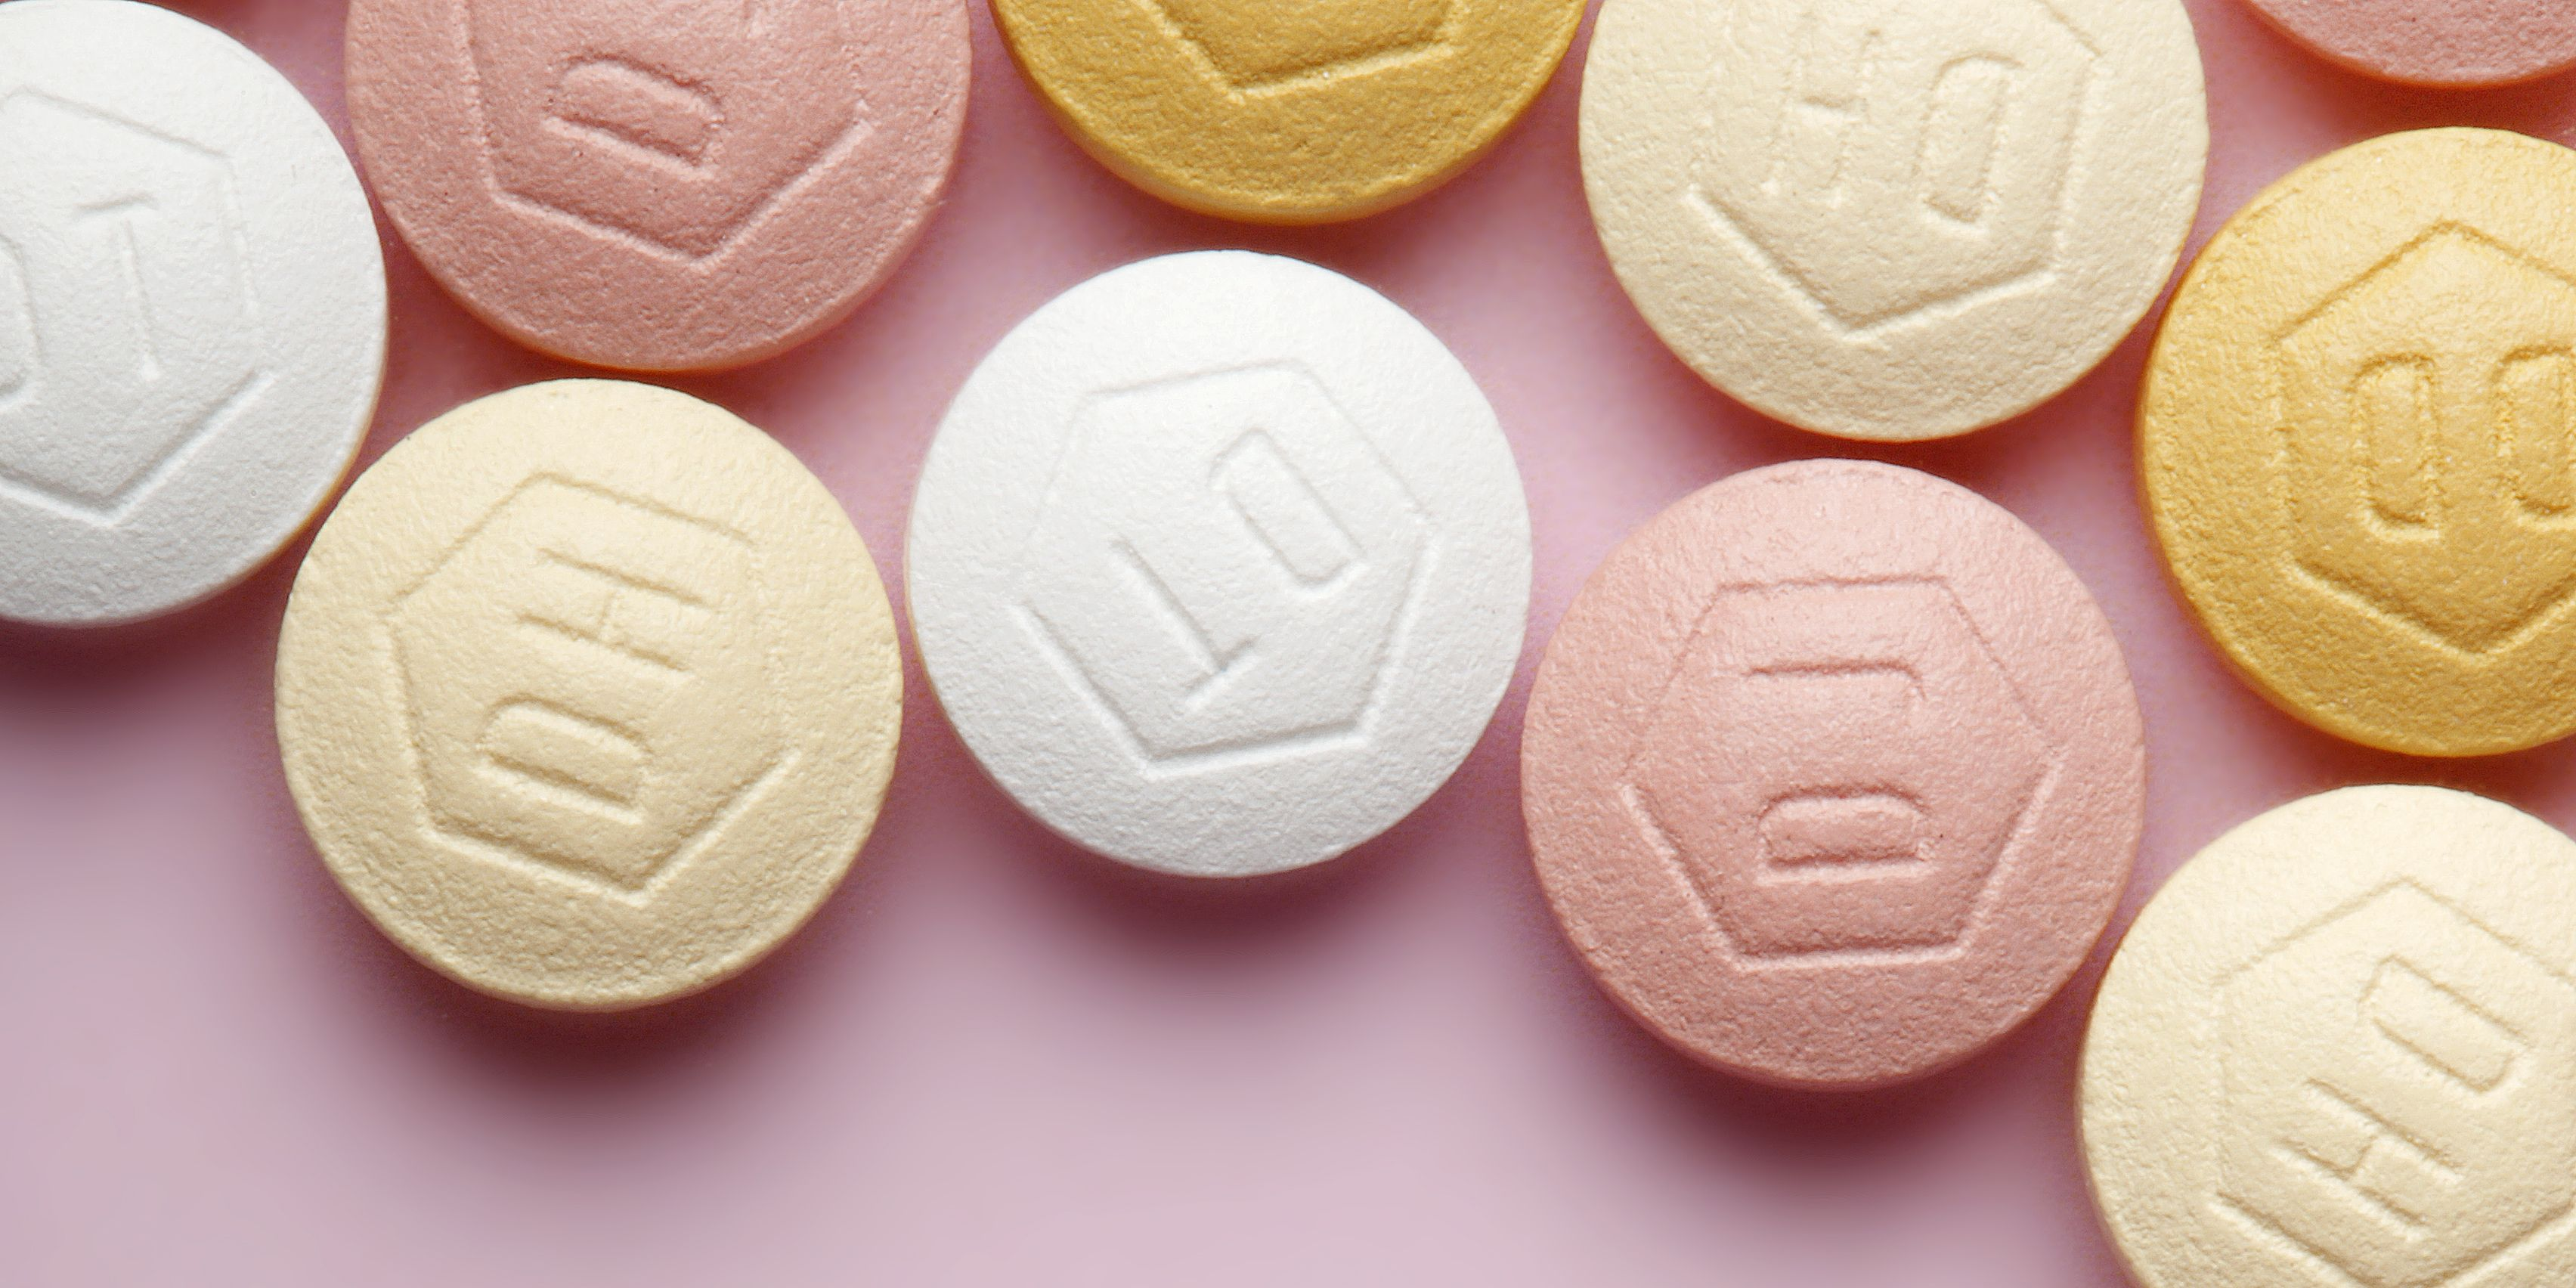 Close up of contraceptive pills on a pink surface